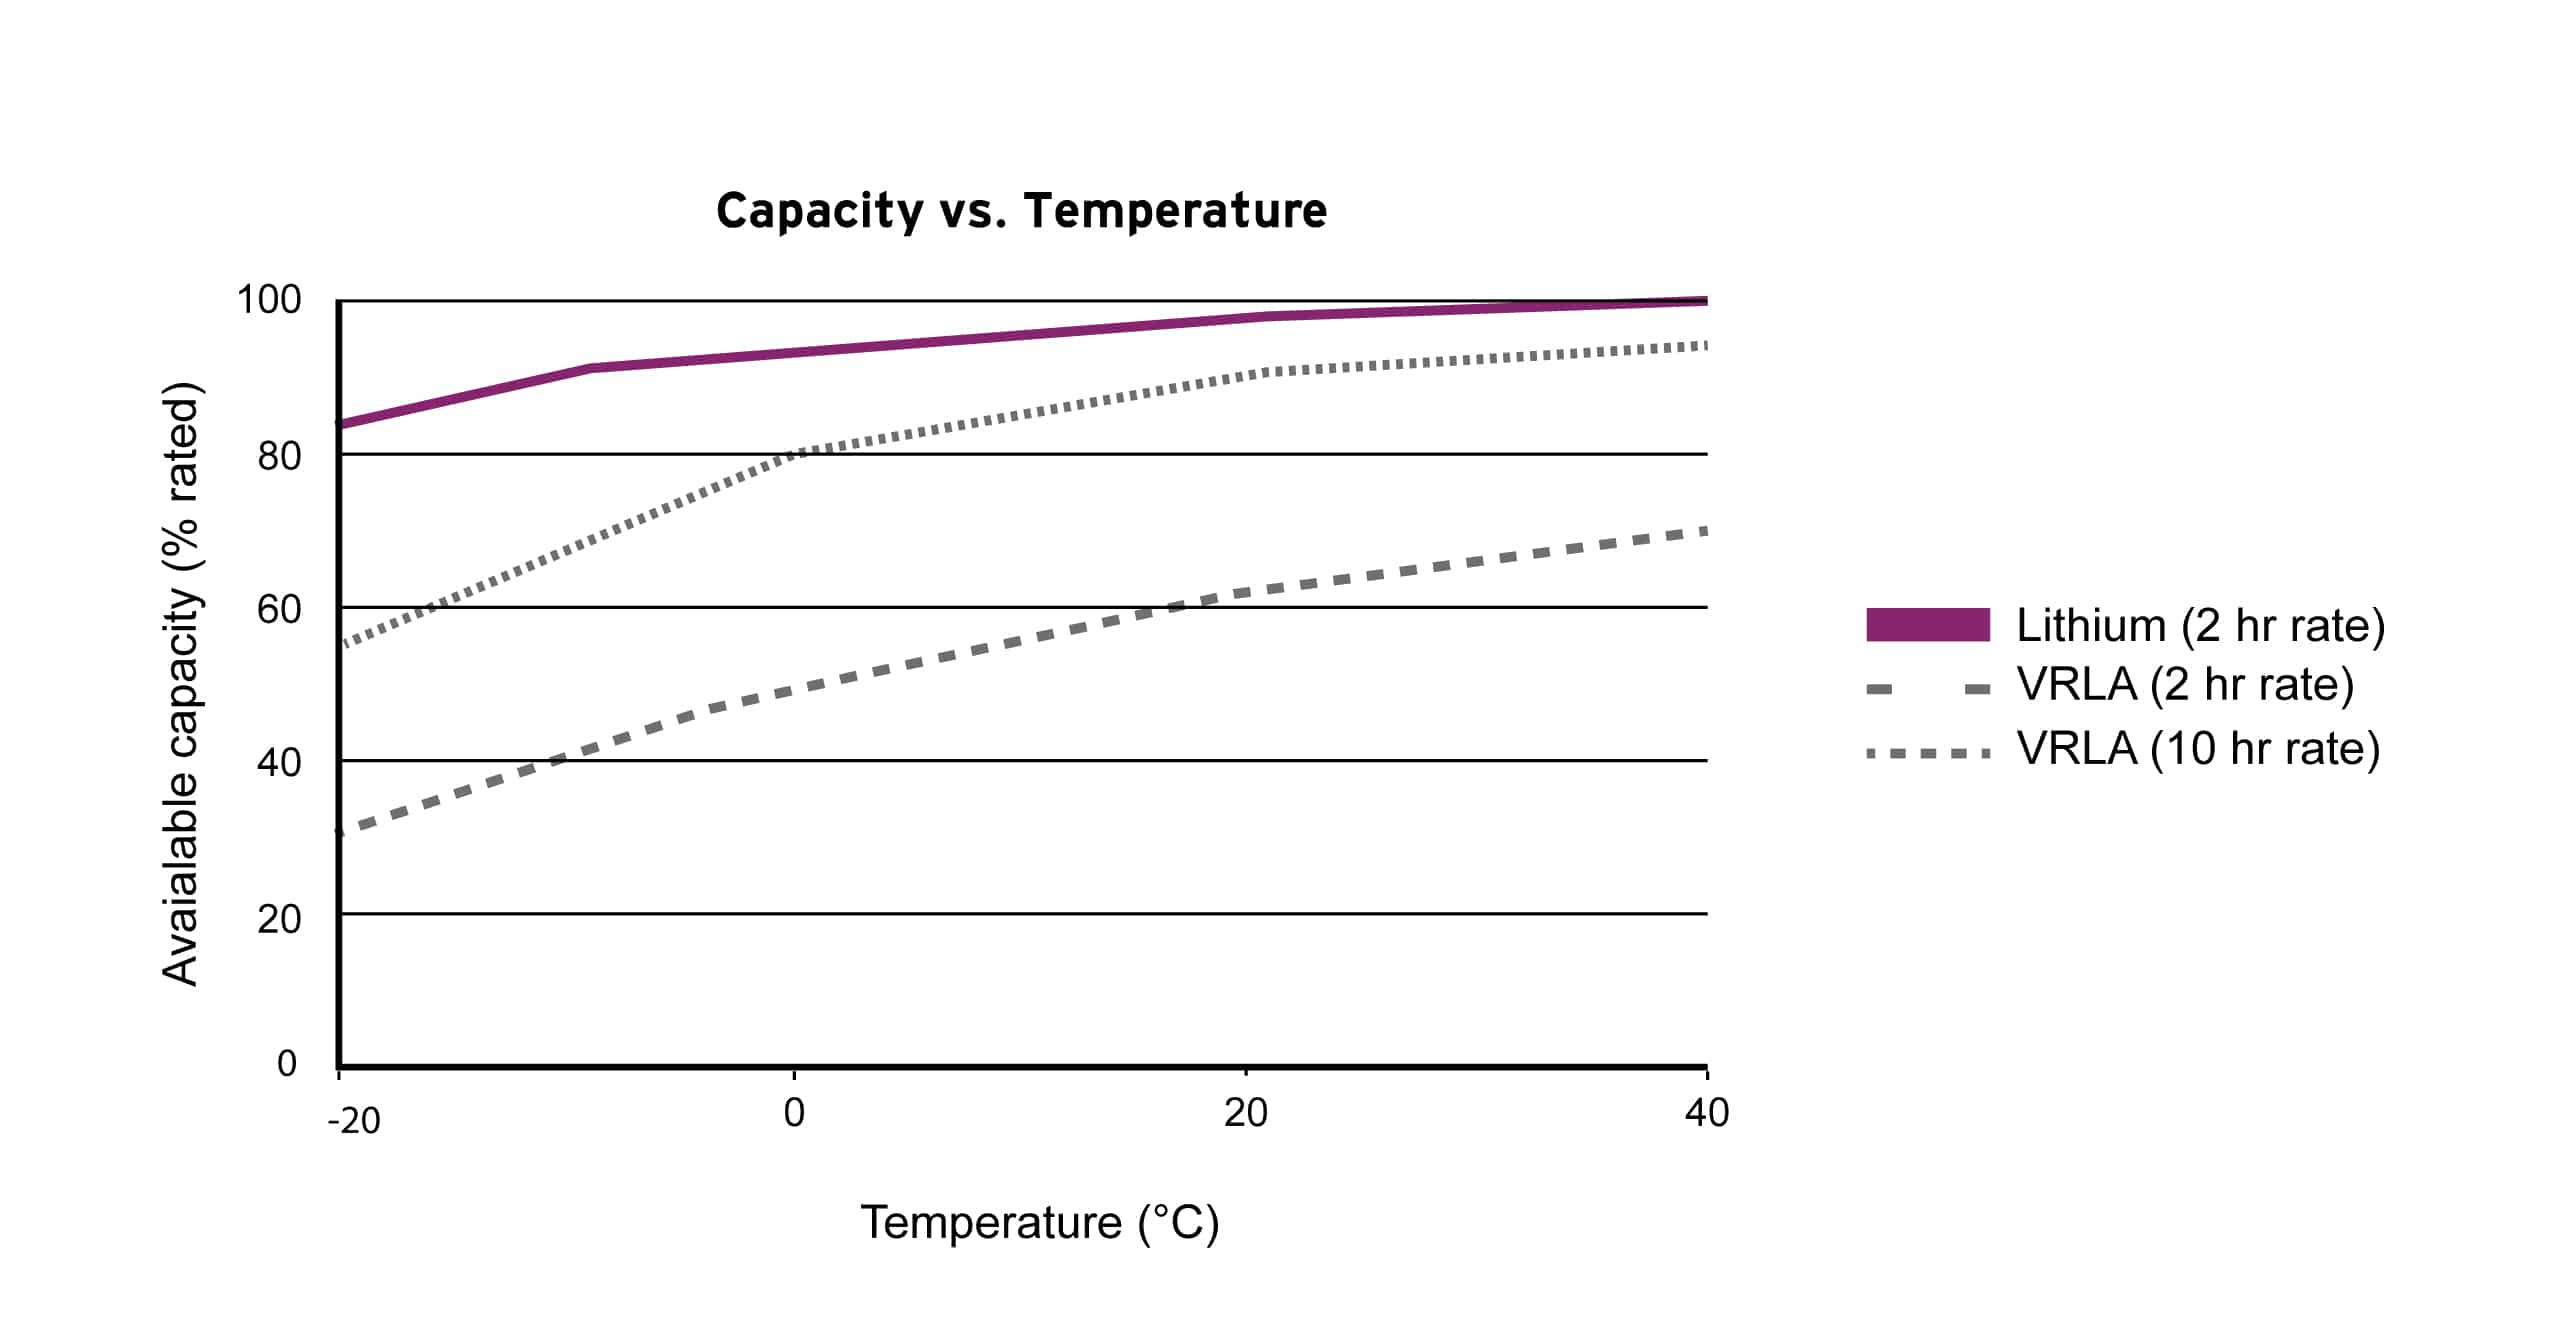 Lithium-ion battery capacity versus temperature